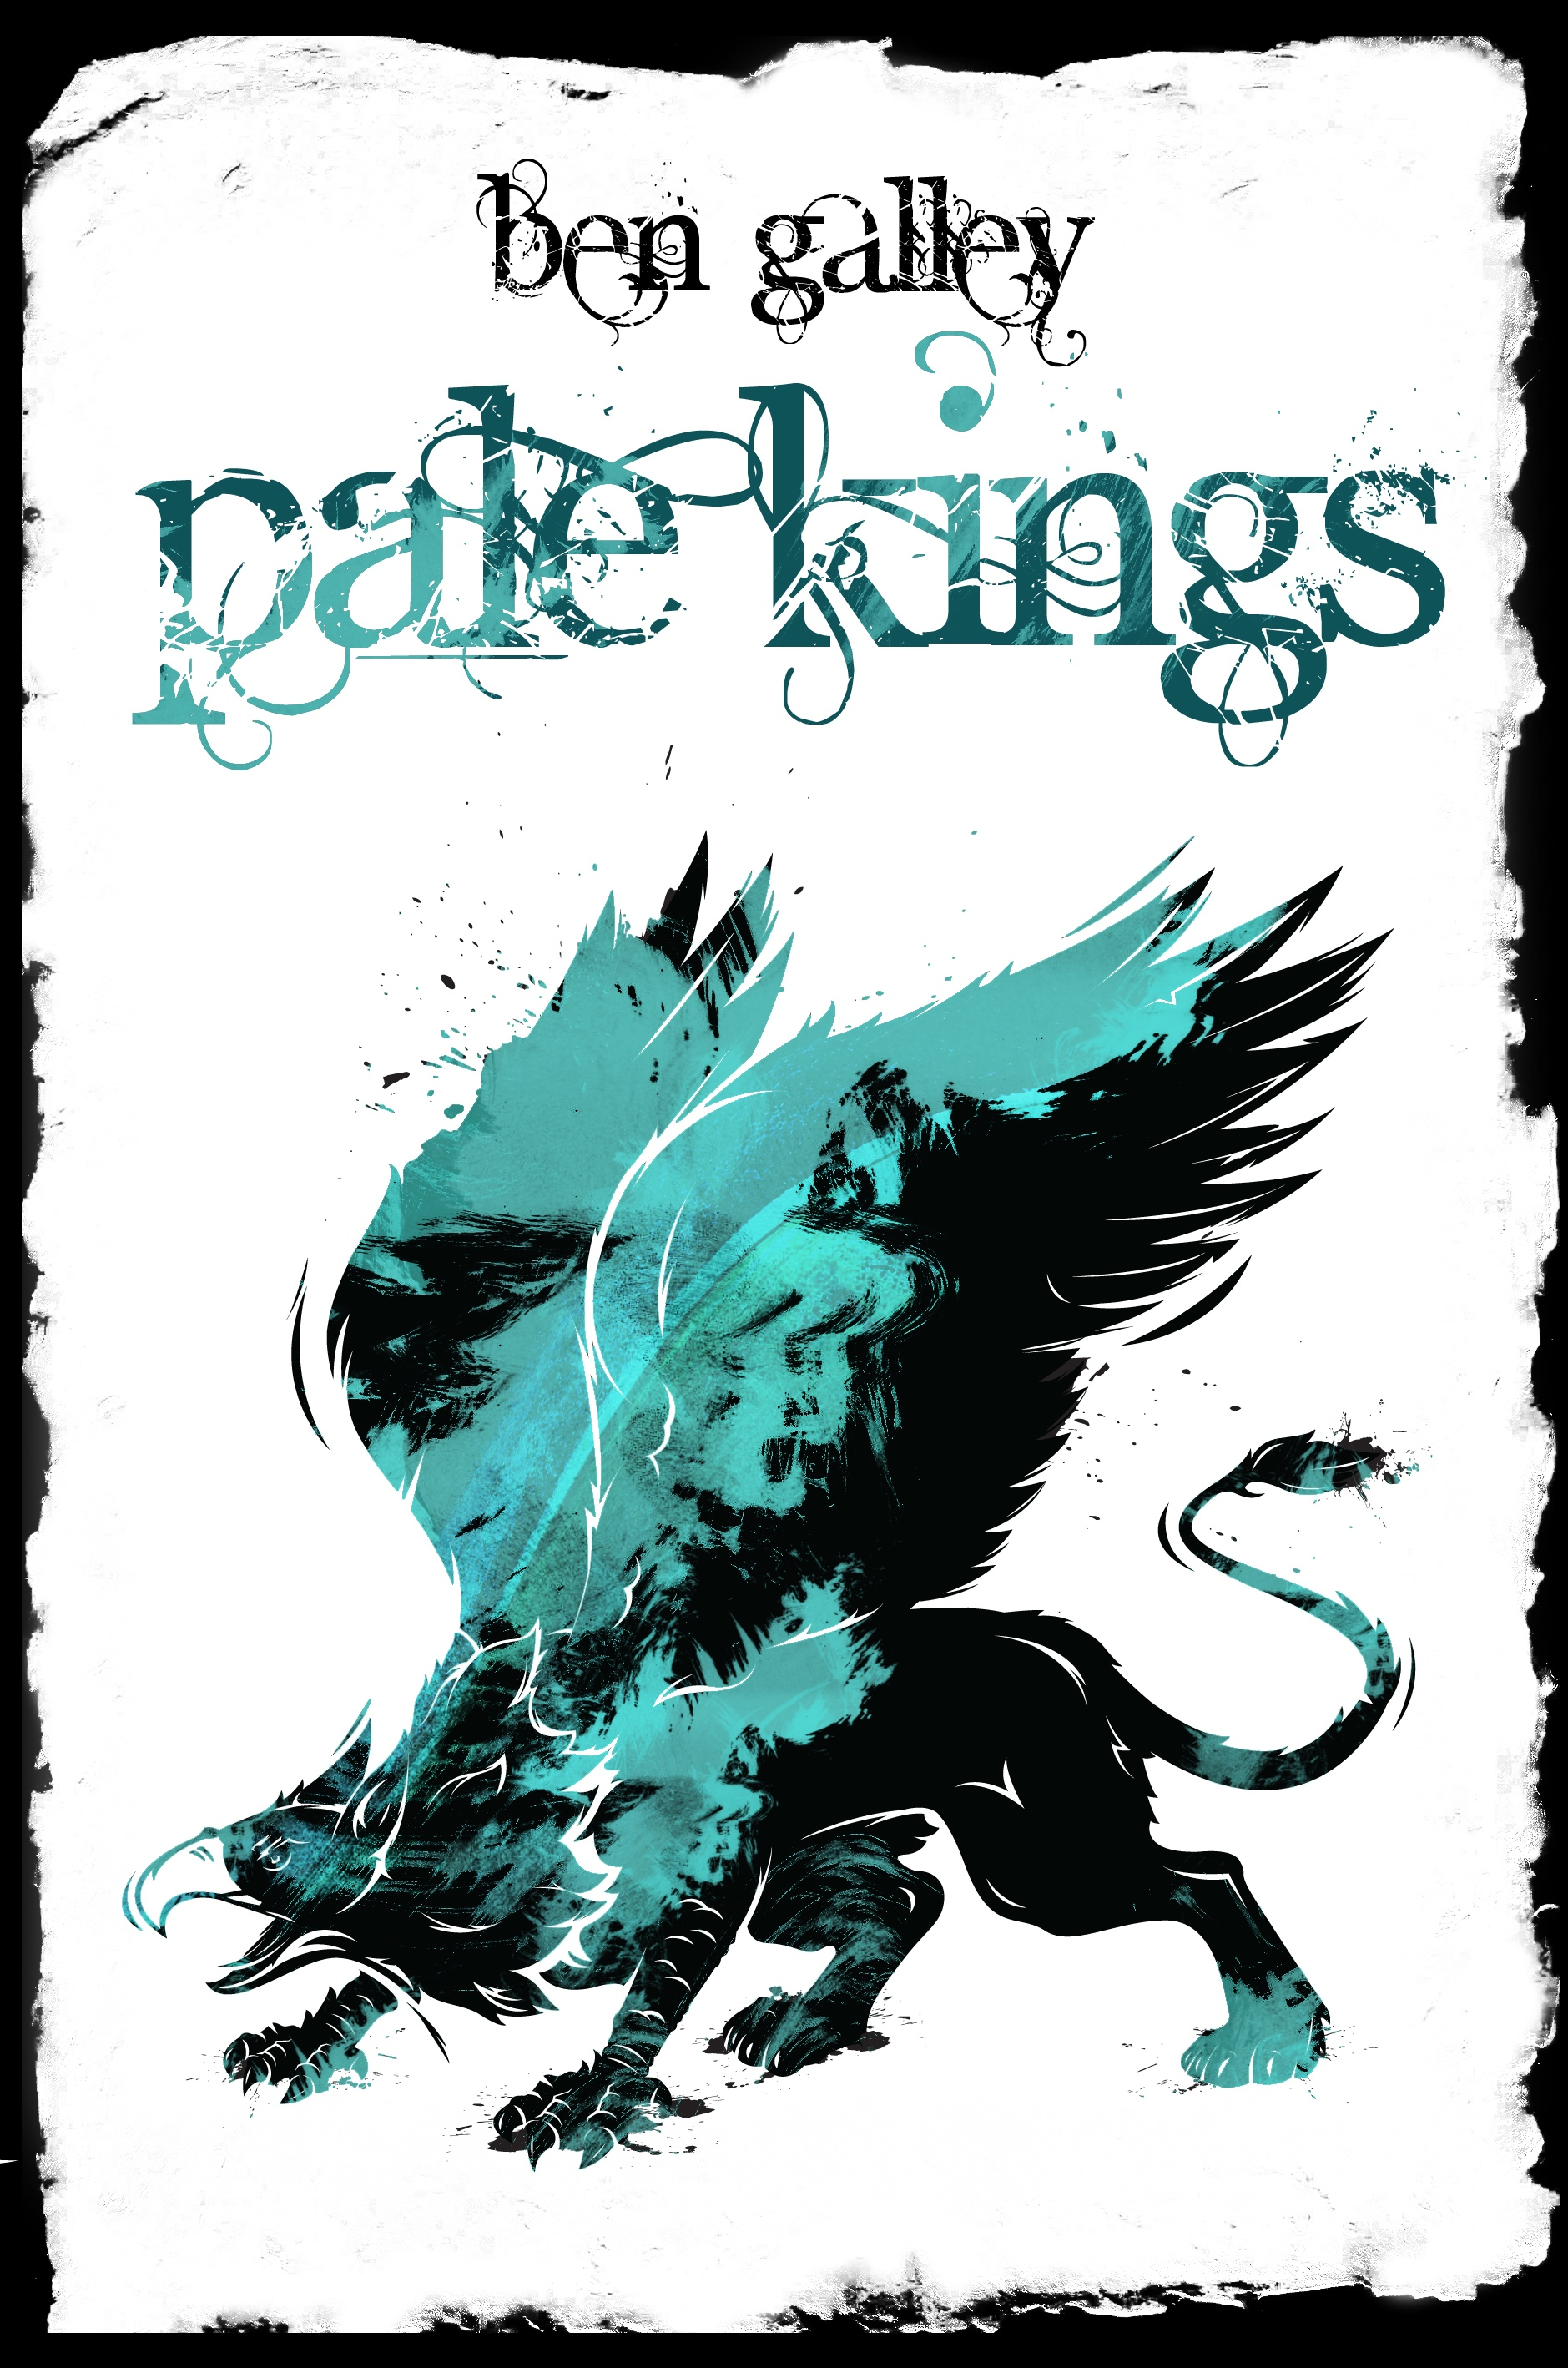 Pale Kings By: Ben Galley